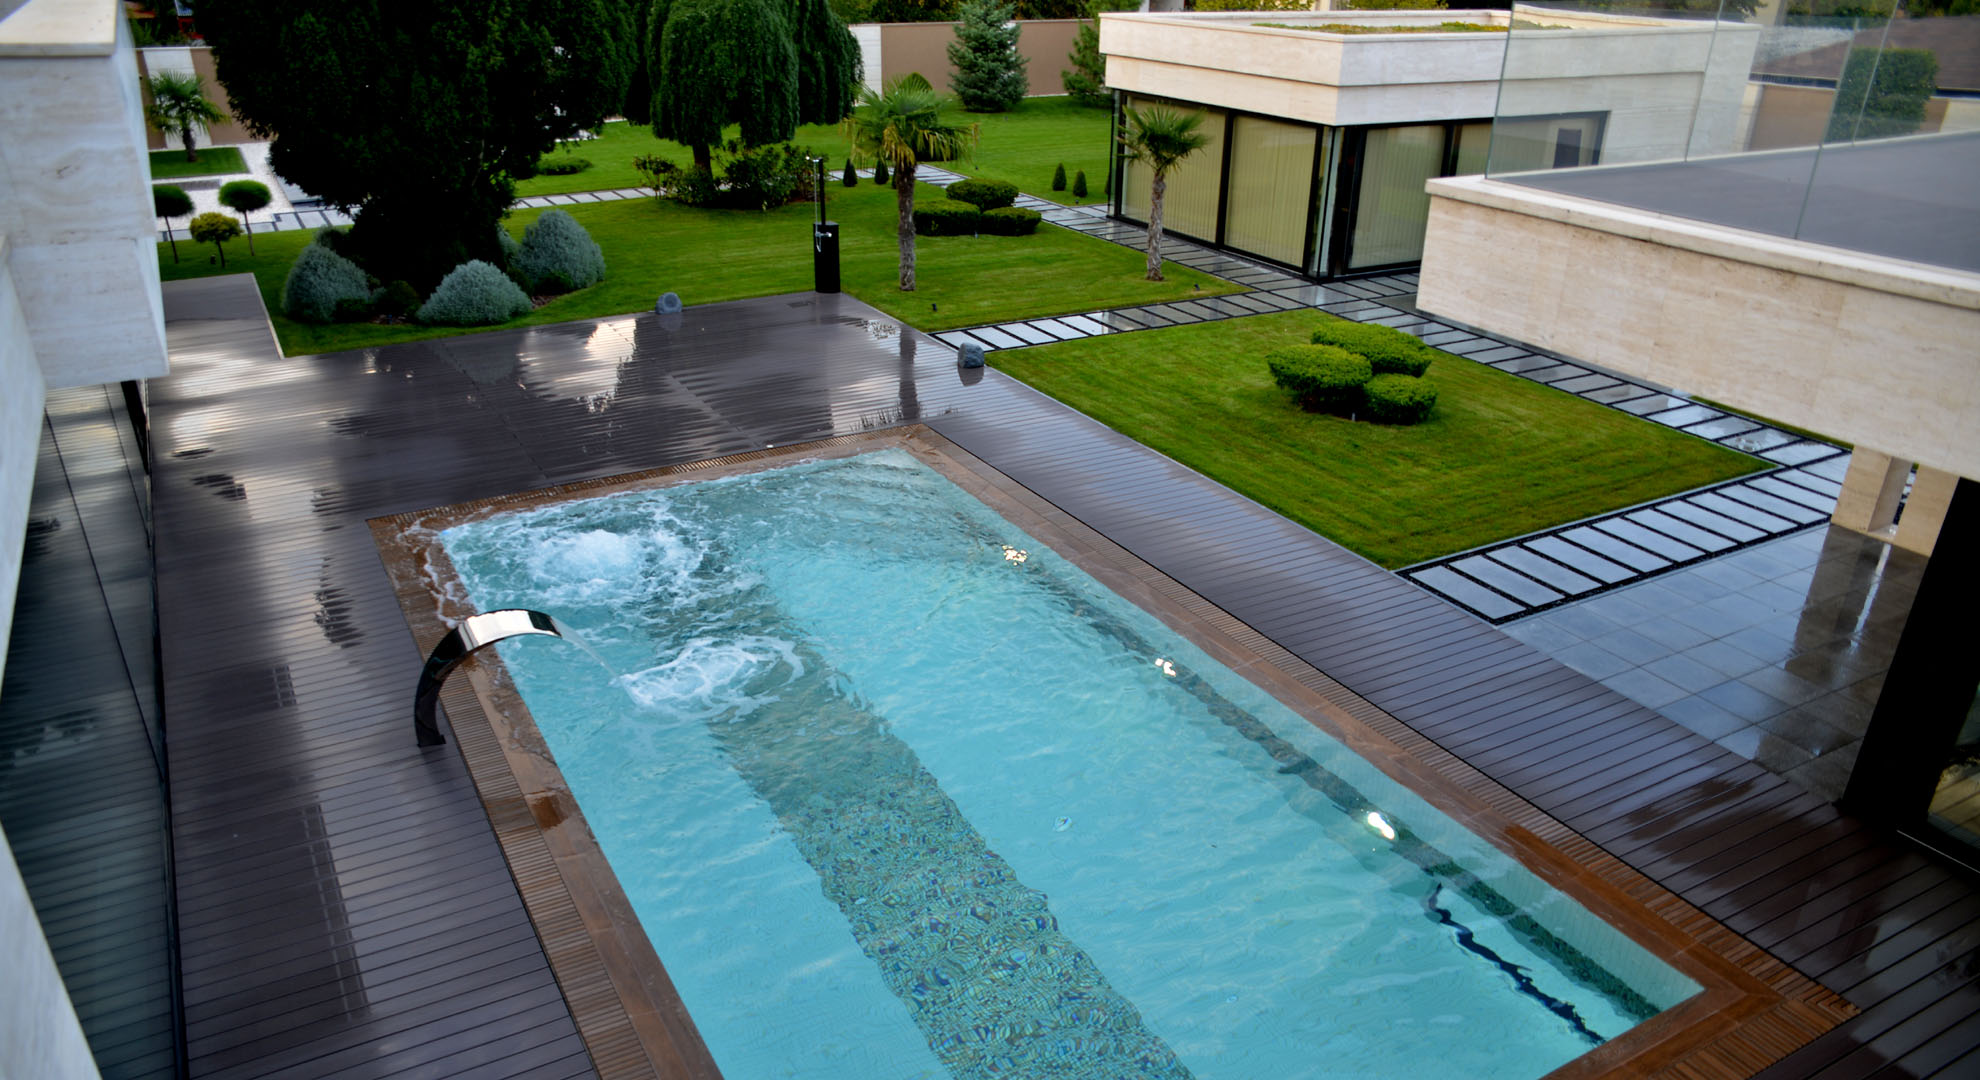 luxury-garden-in-christina-villa-budapest